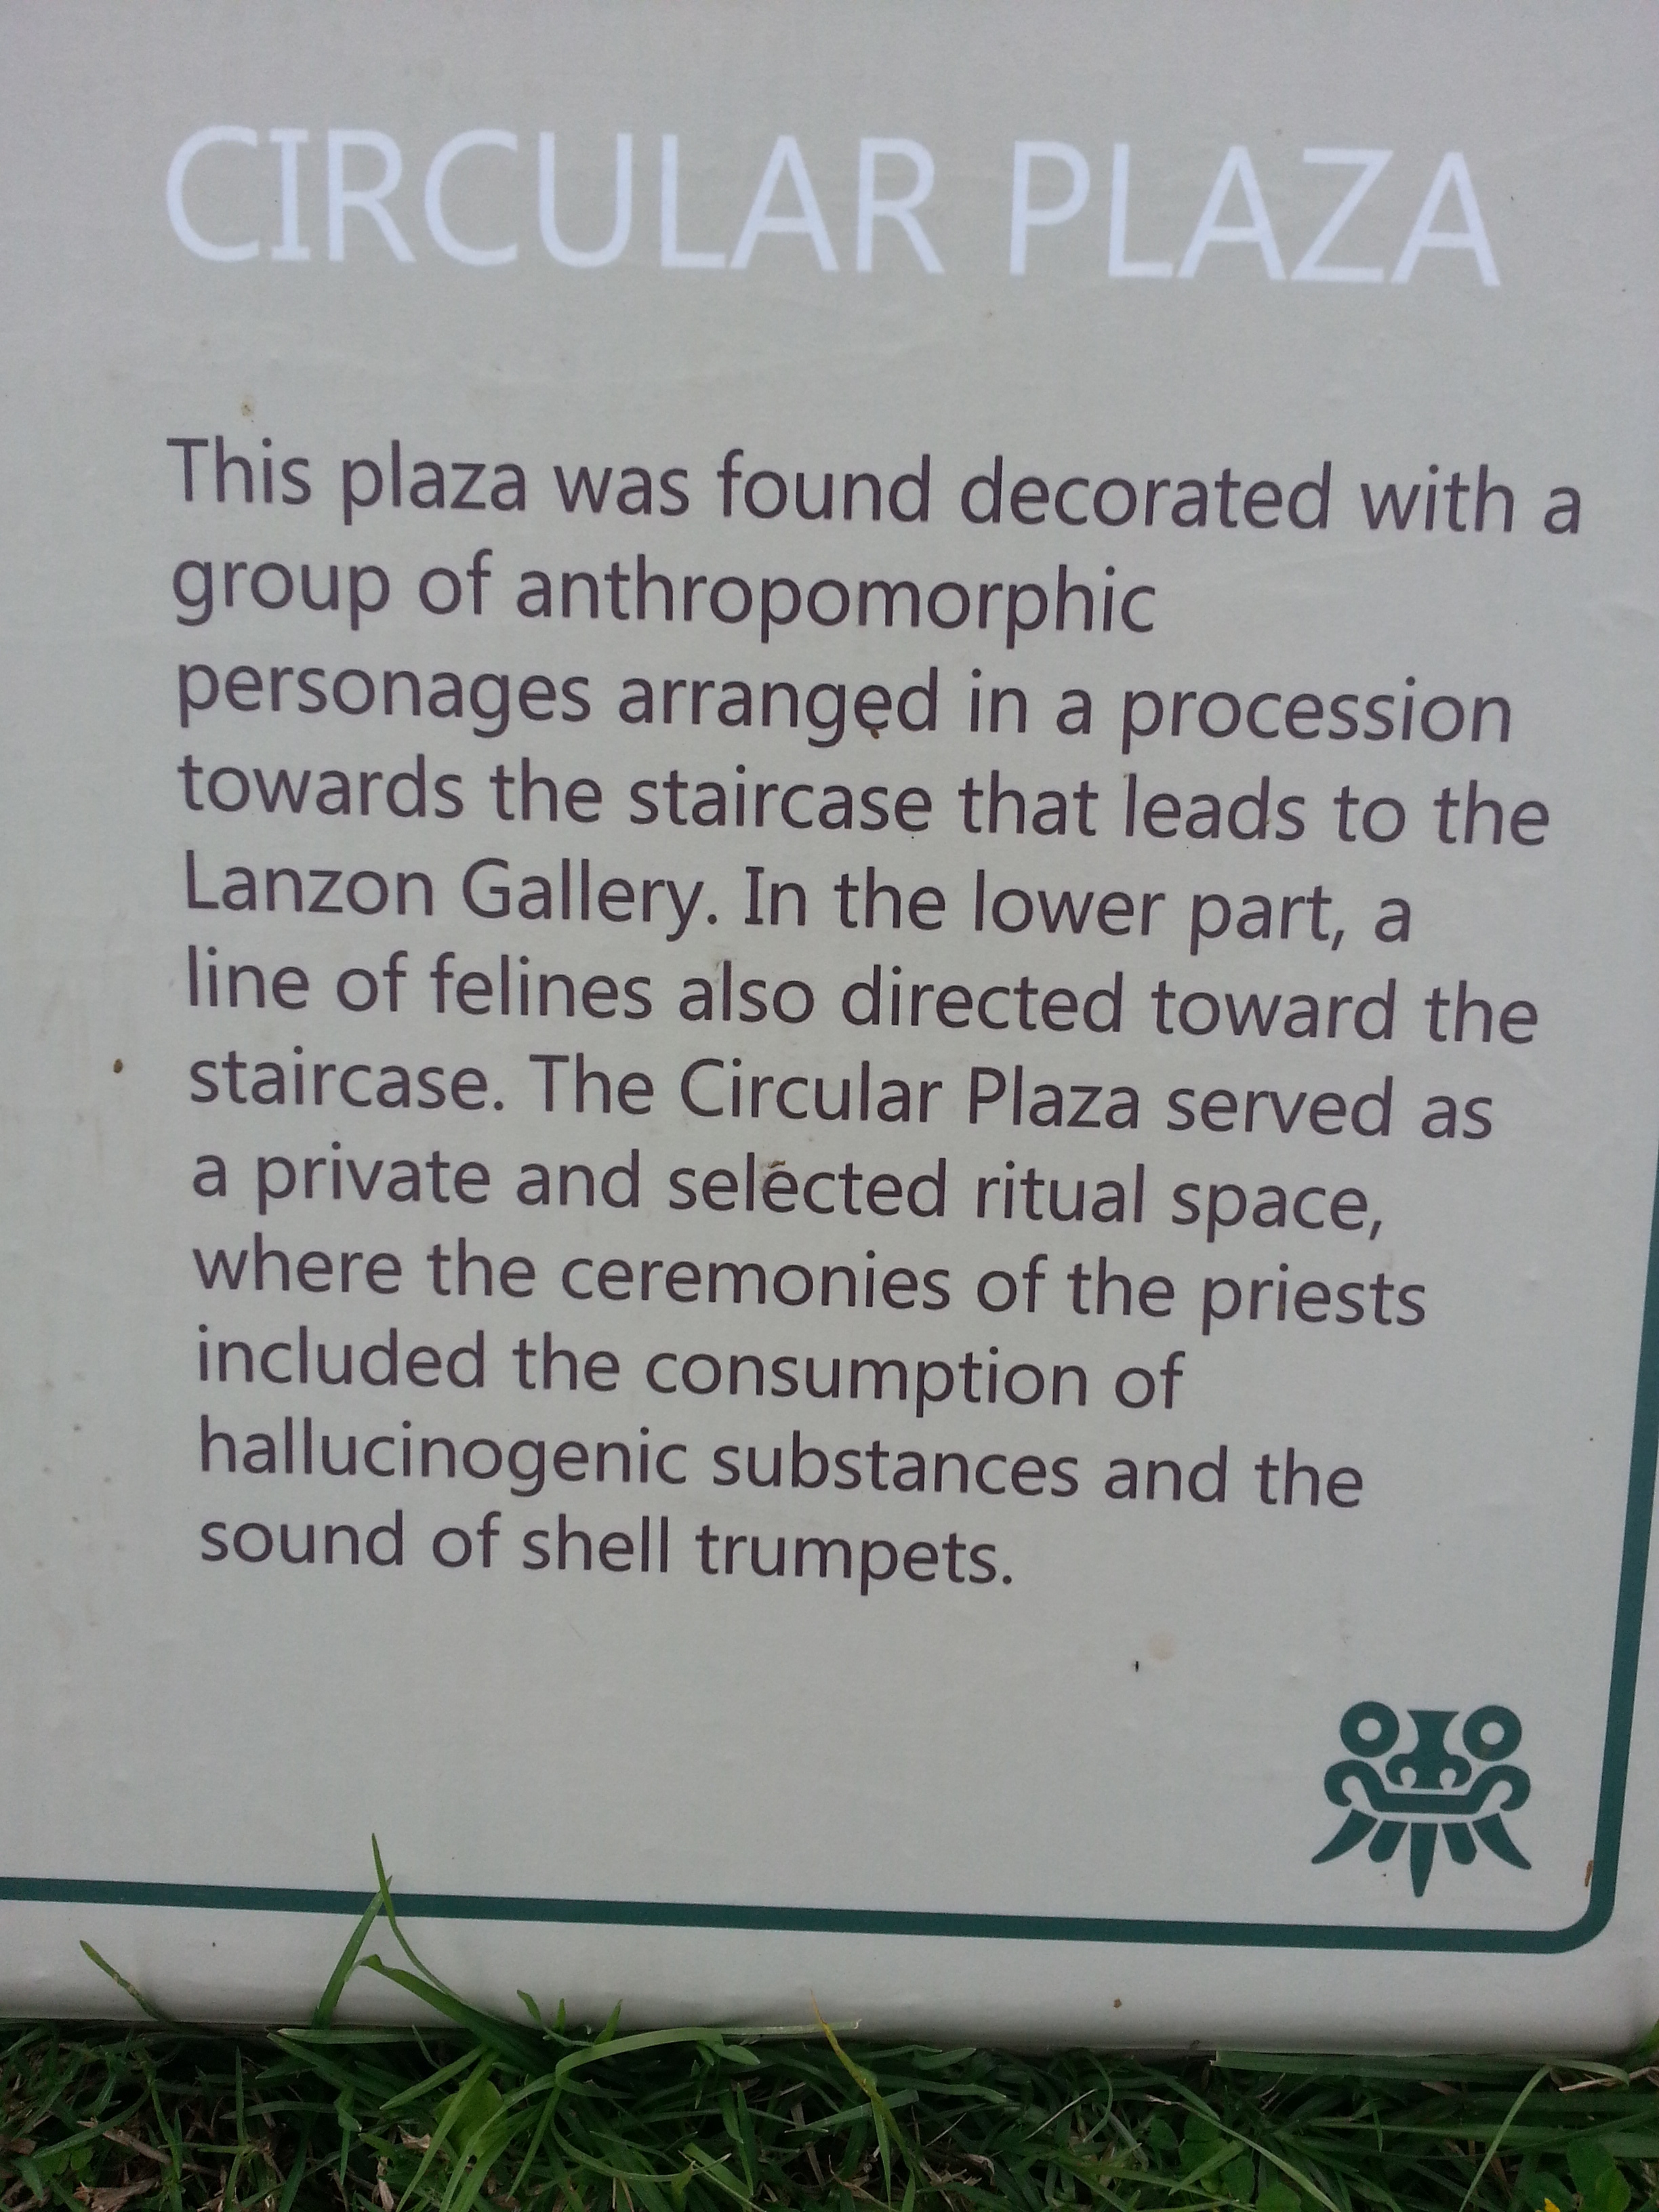 Peruvian archeological opinion of the use of the site.